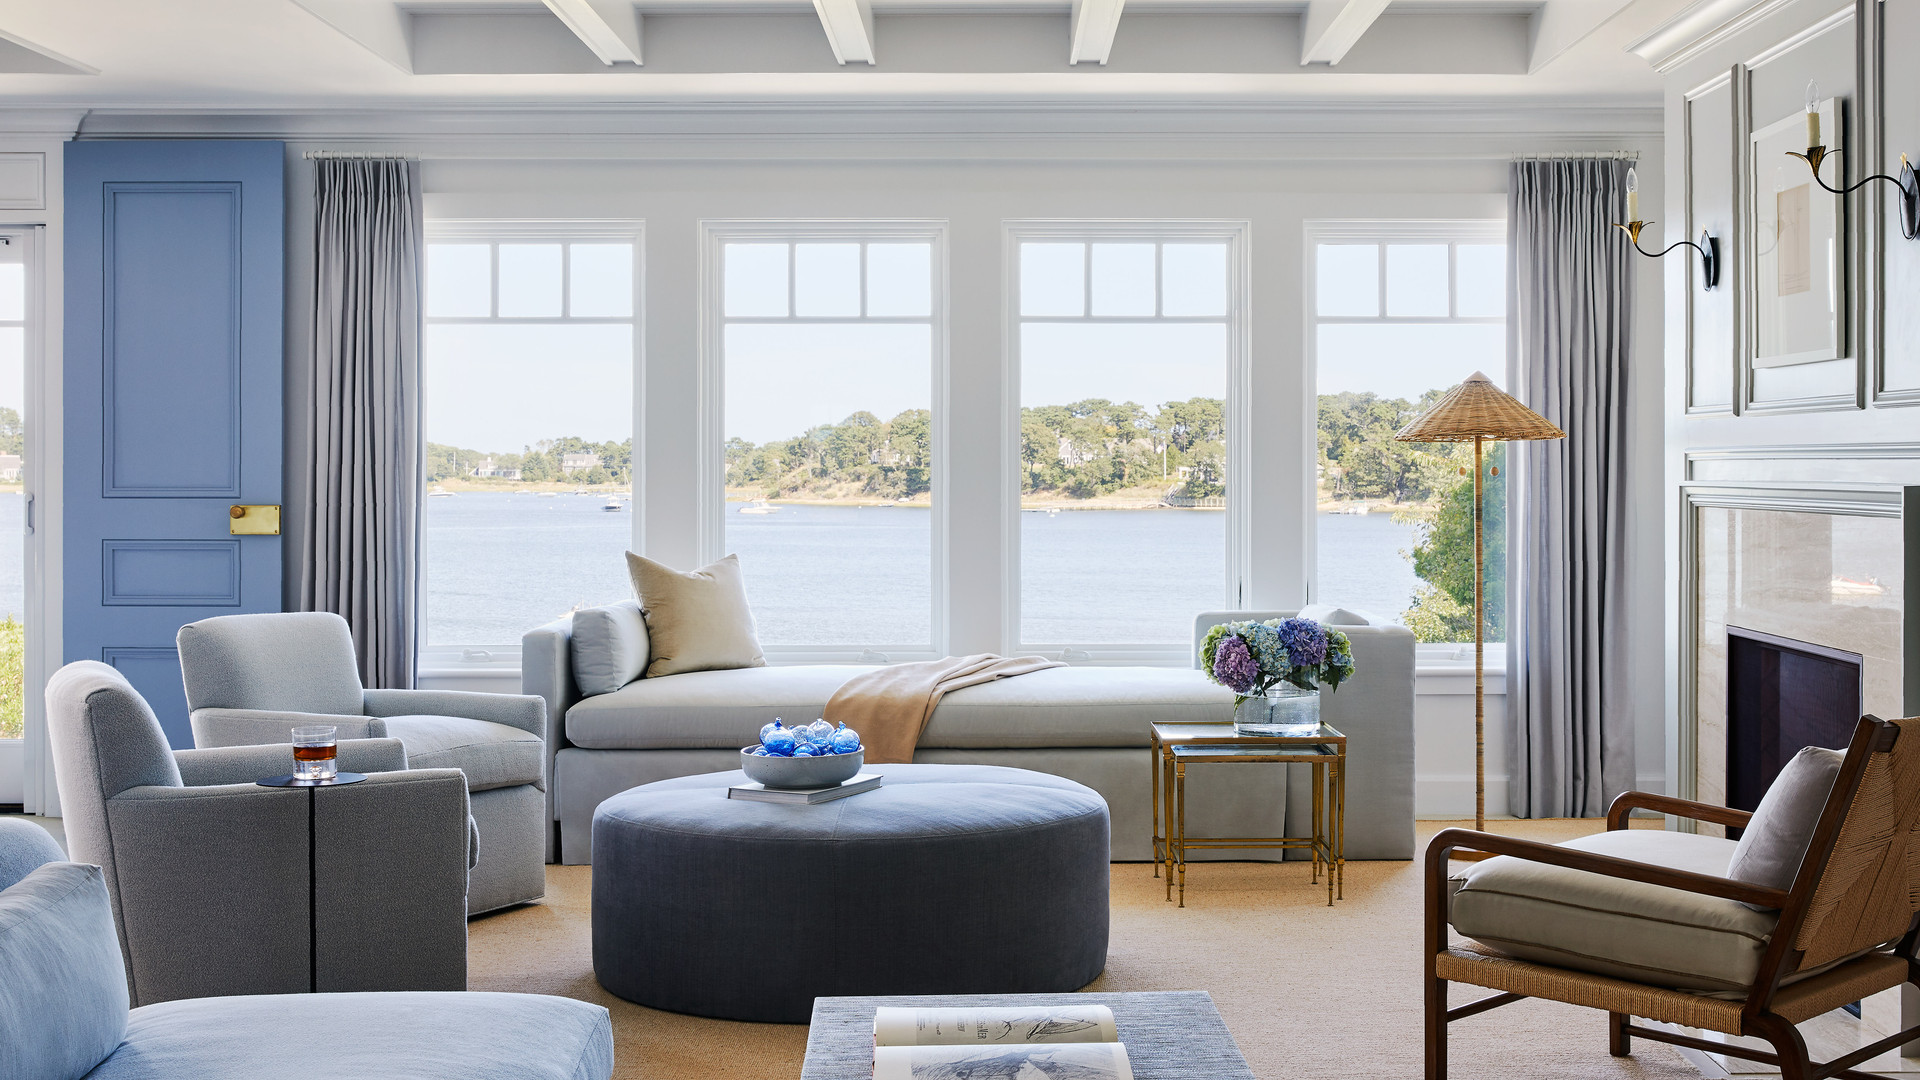 Chatham | A House by the Sea | Video | Lisa Tharp Design